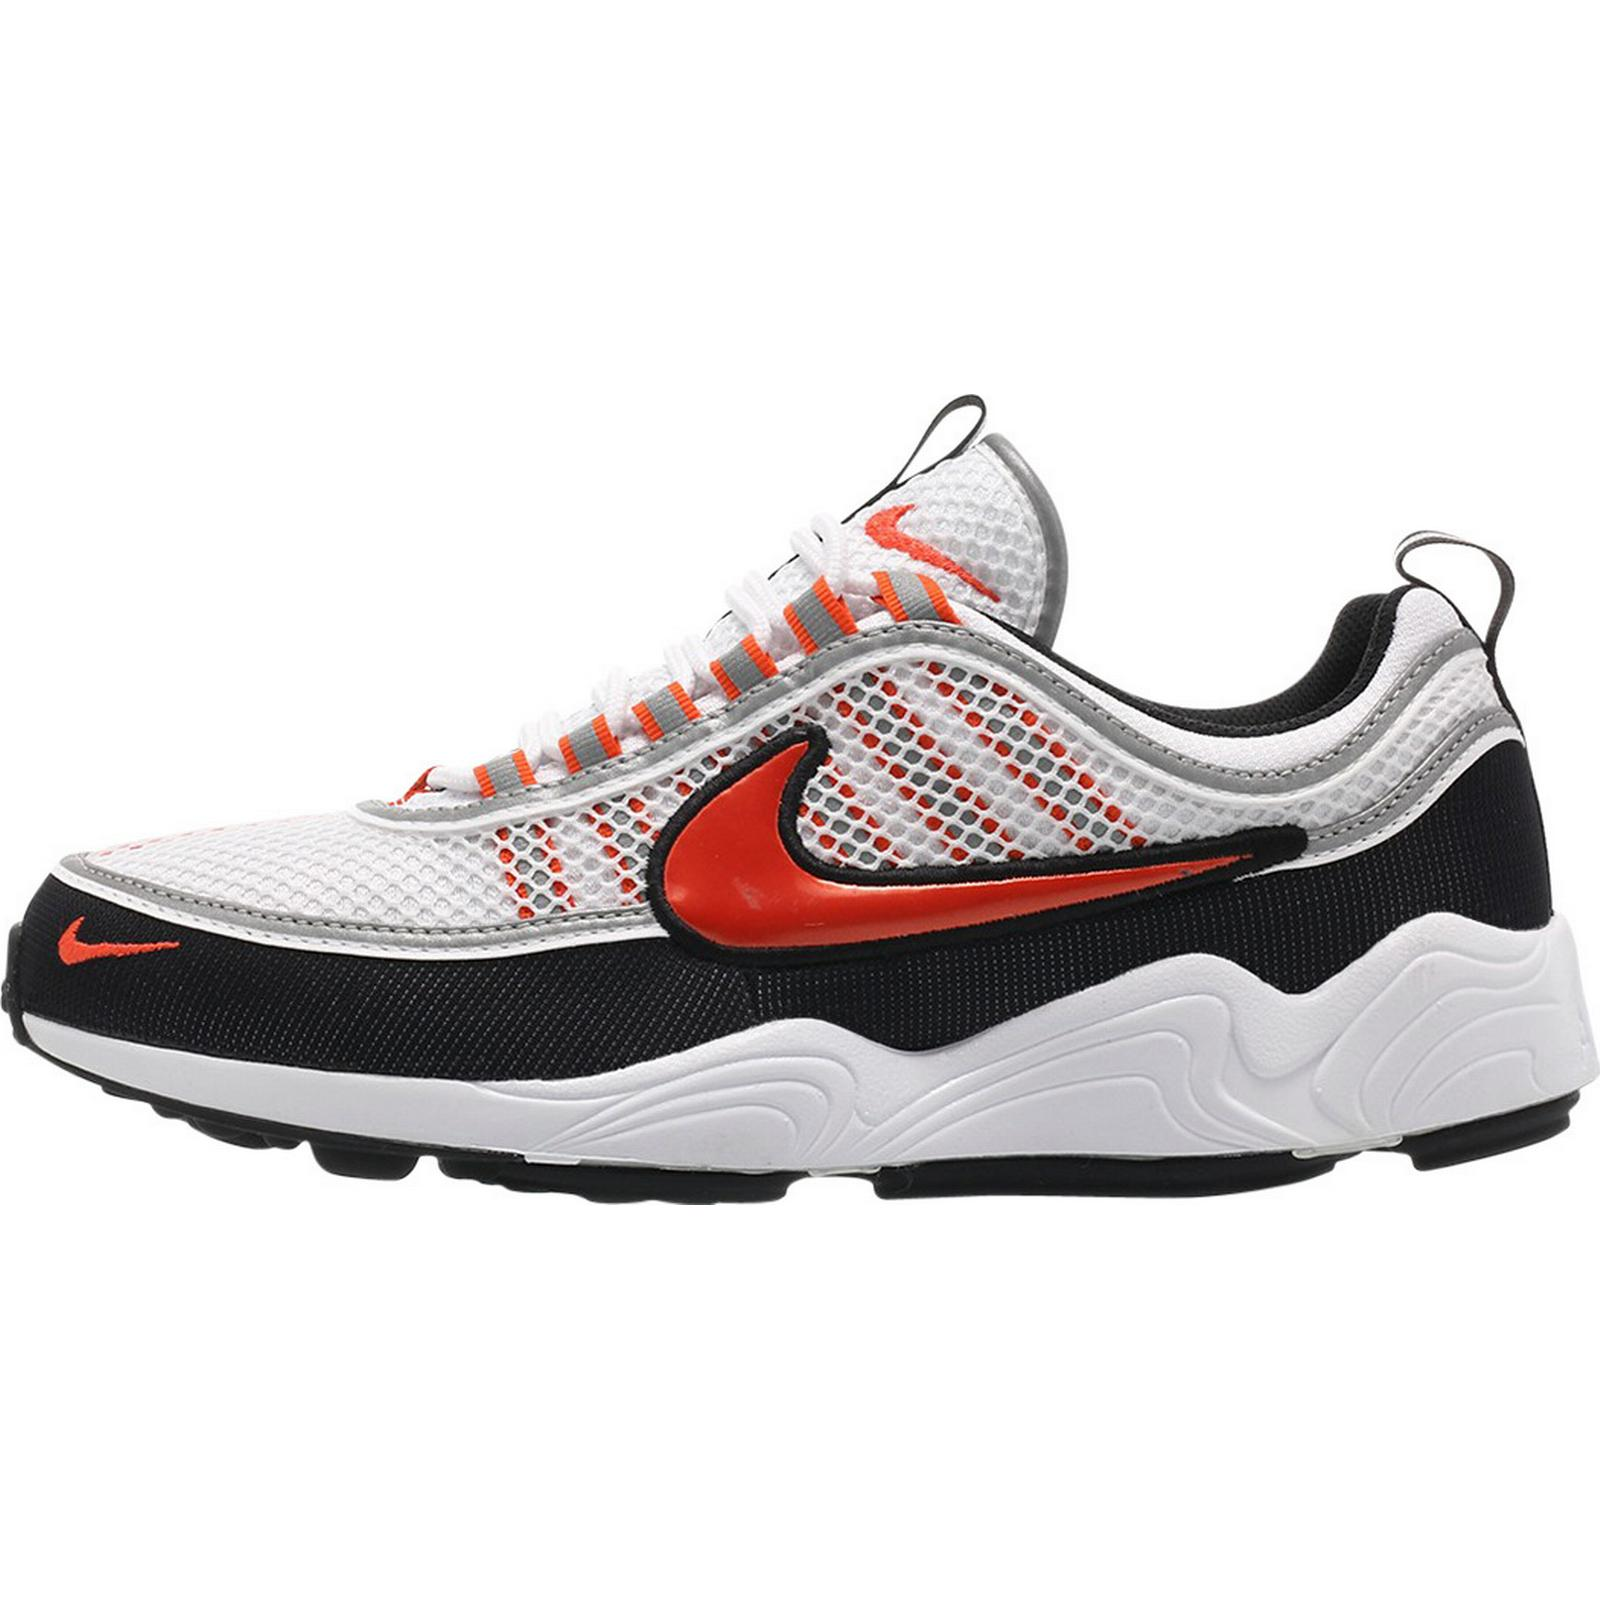 Gentleman/Lady - - Nike Air Zoom Spiridon 16 - Gentleman/Lady Wit - Slip On dd8335